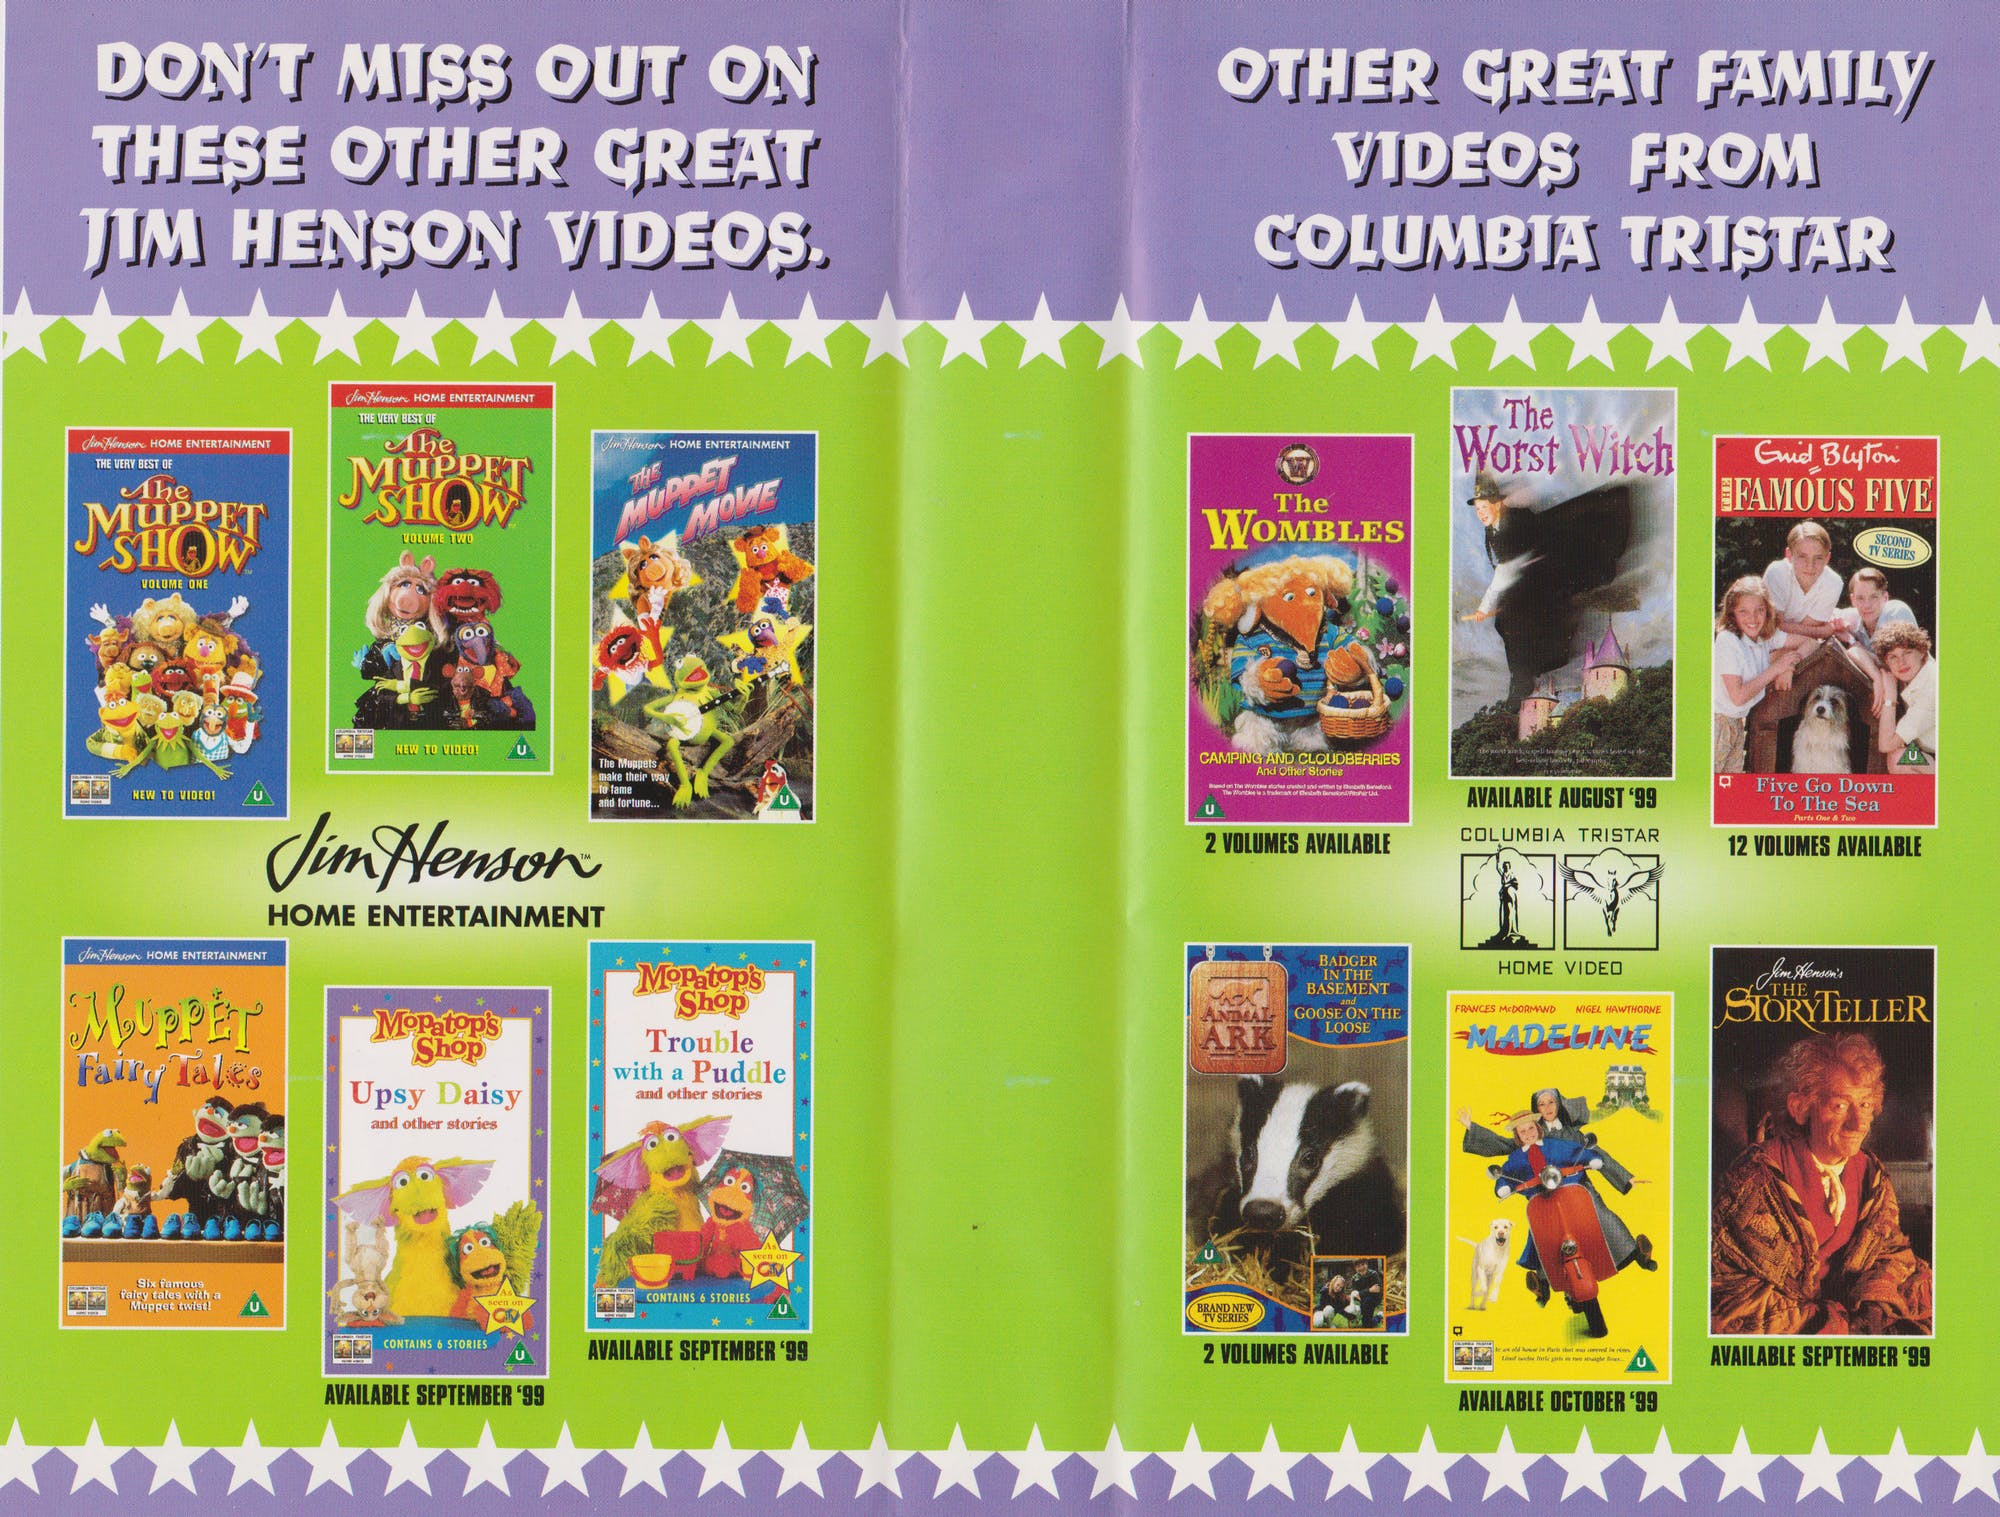 Jim Henson Home Entertainment & Columbia TriStar Home Video.